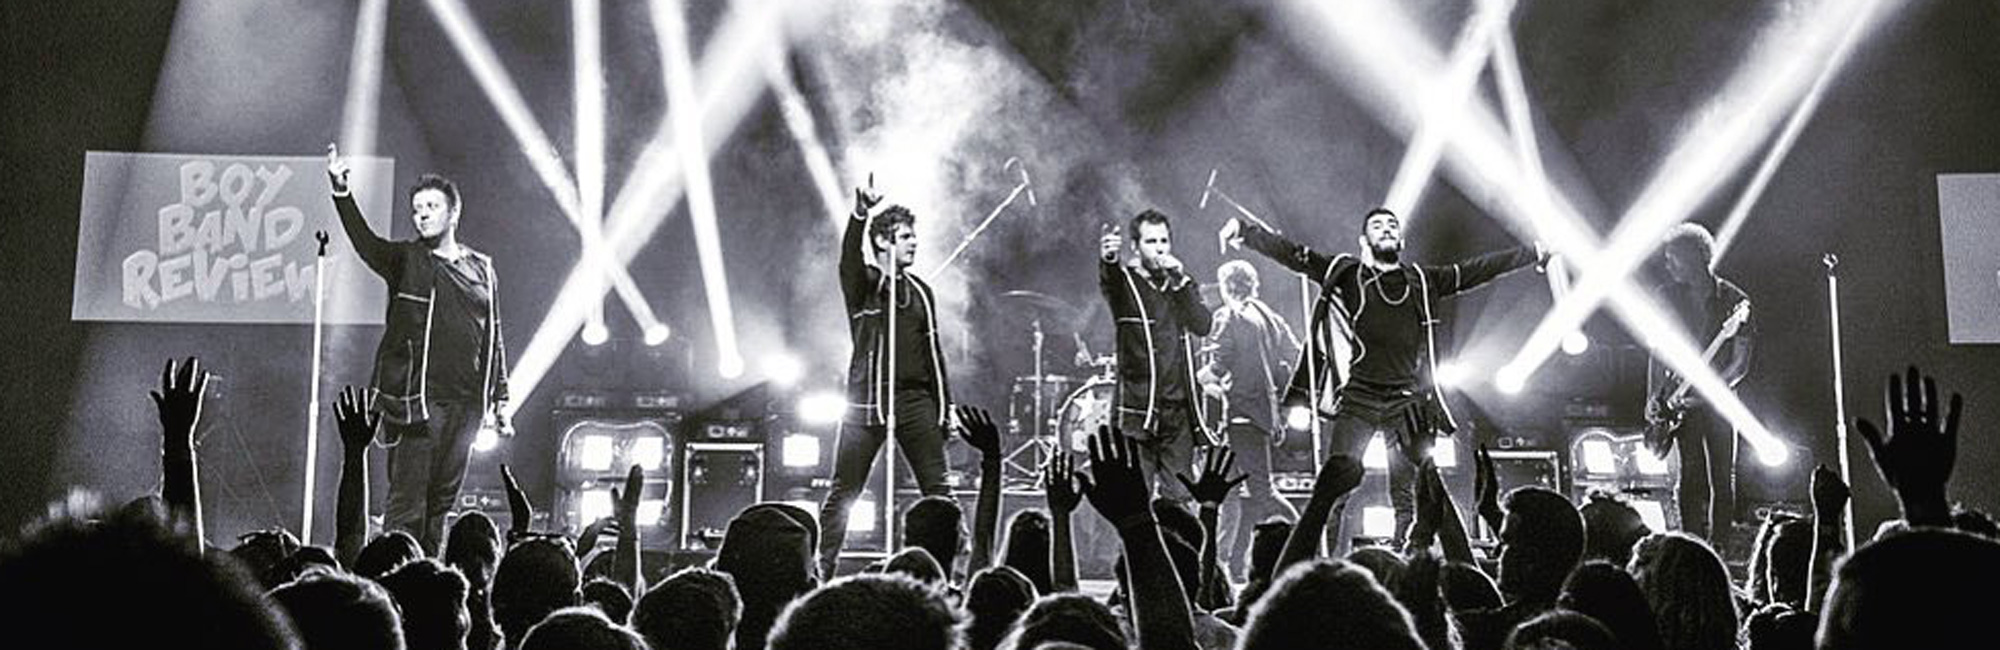 '90s Boy Band Tribute on Saturday, July 27